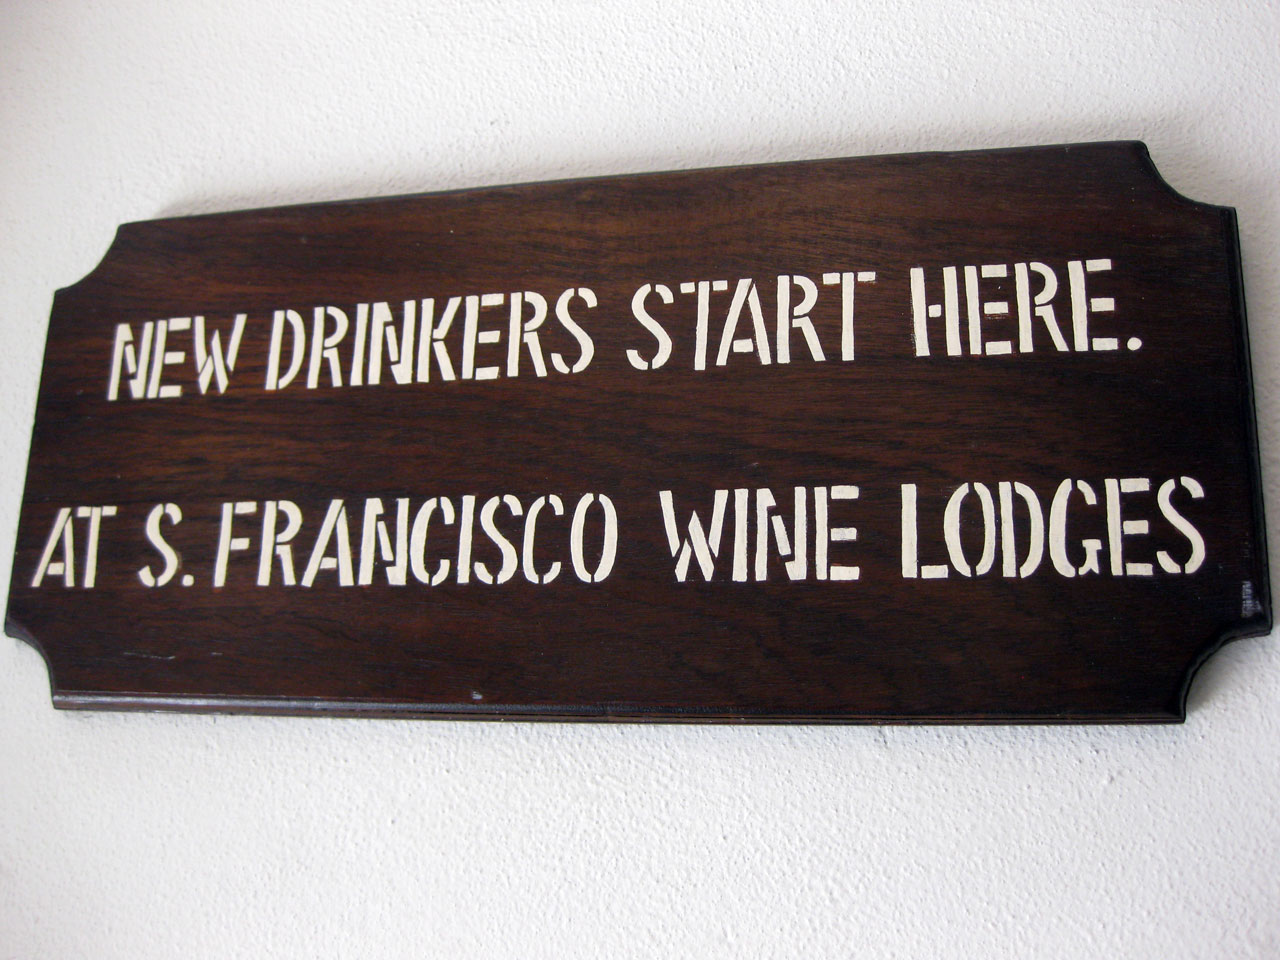 Sign reads 'New drinkers start here, at San Francisco Wine Lodges'